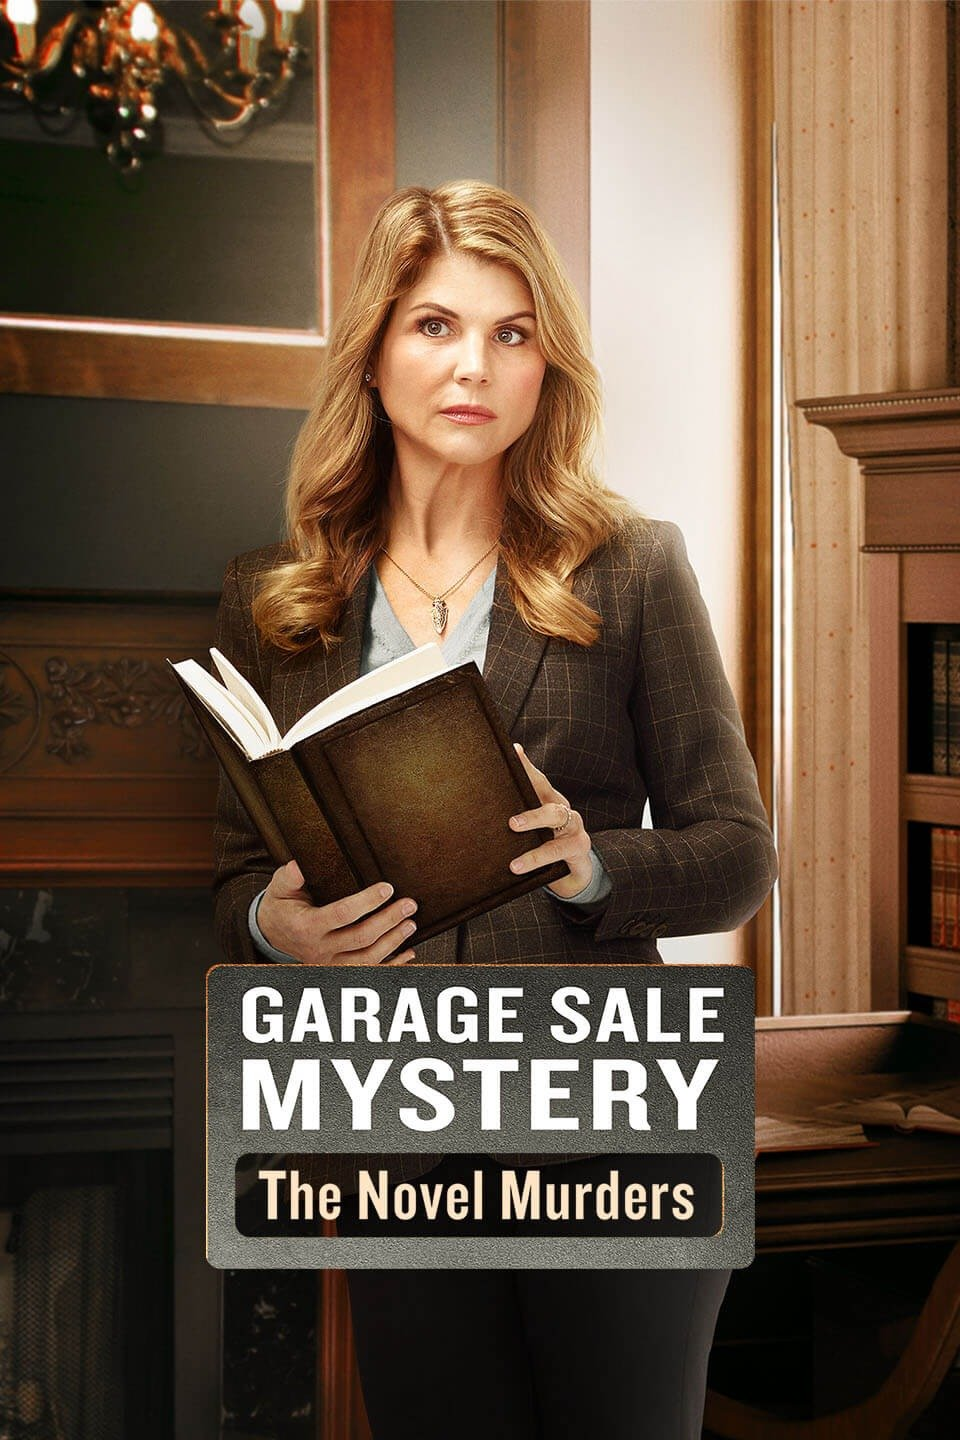 Lori Loughlin in The Novel Murders (2016)